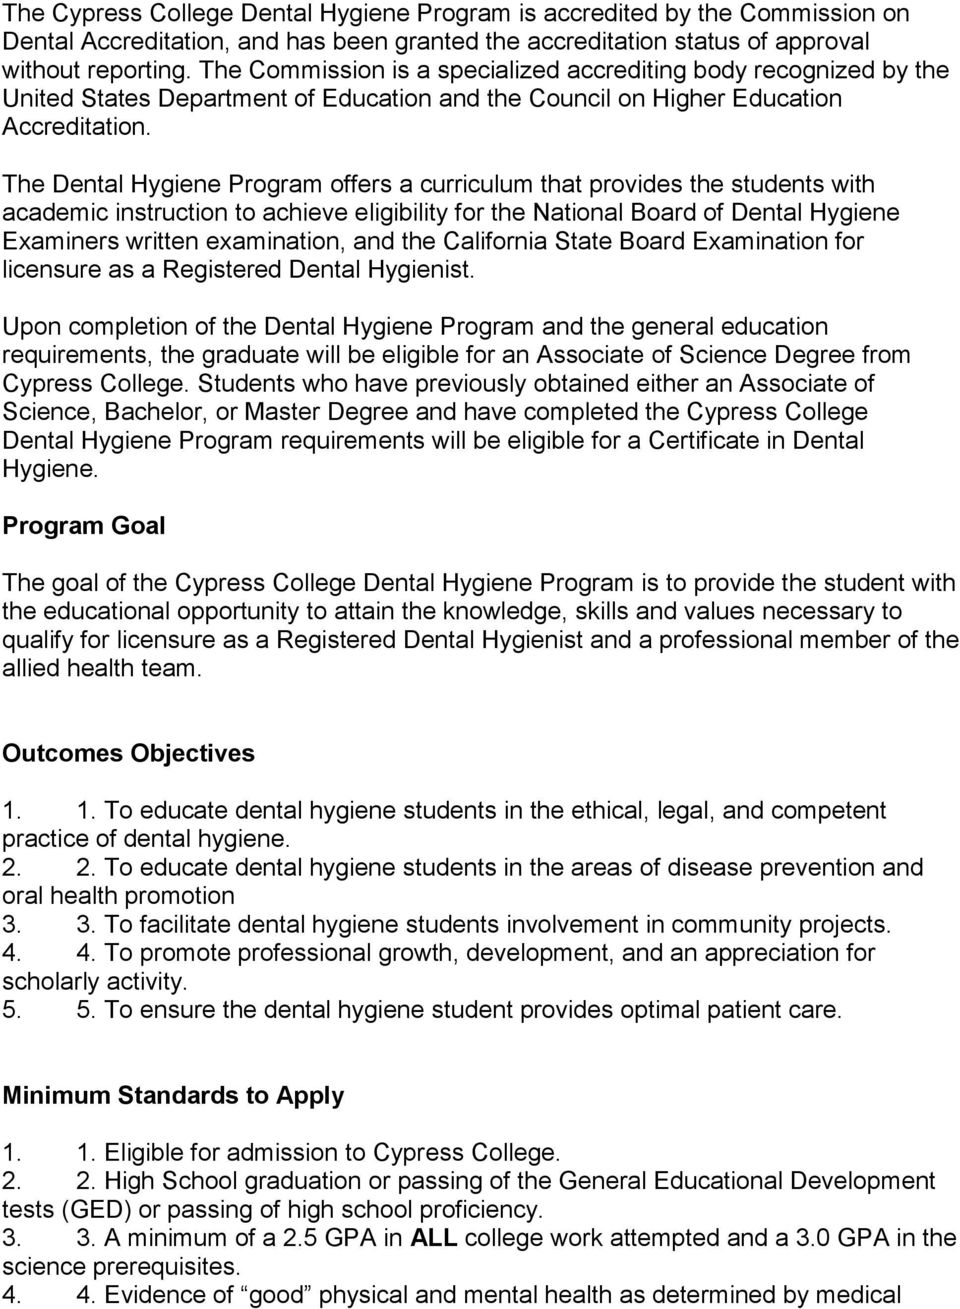 The Dental Hygiene Program offers a curriculum that provides the students with academic instruction to achieve eligibility for the National Board of Dental Hygiene Examiners written examination, and